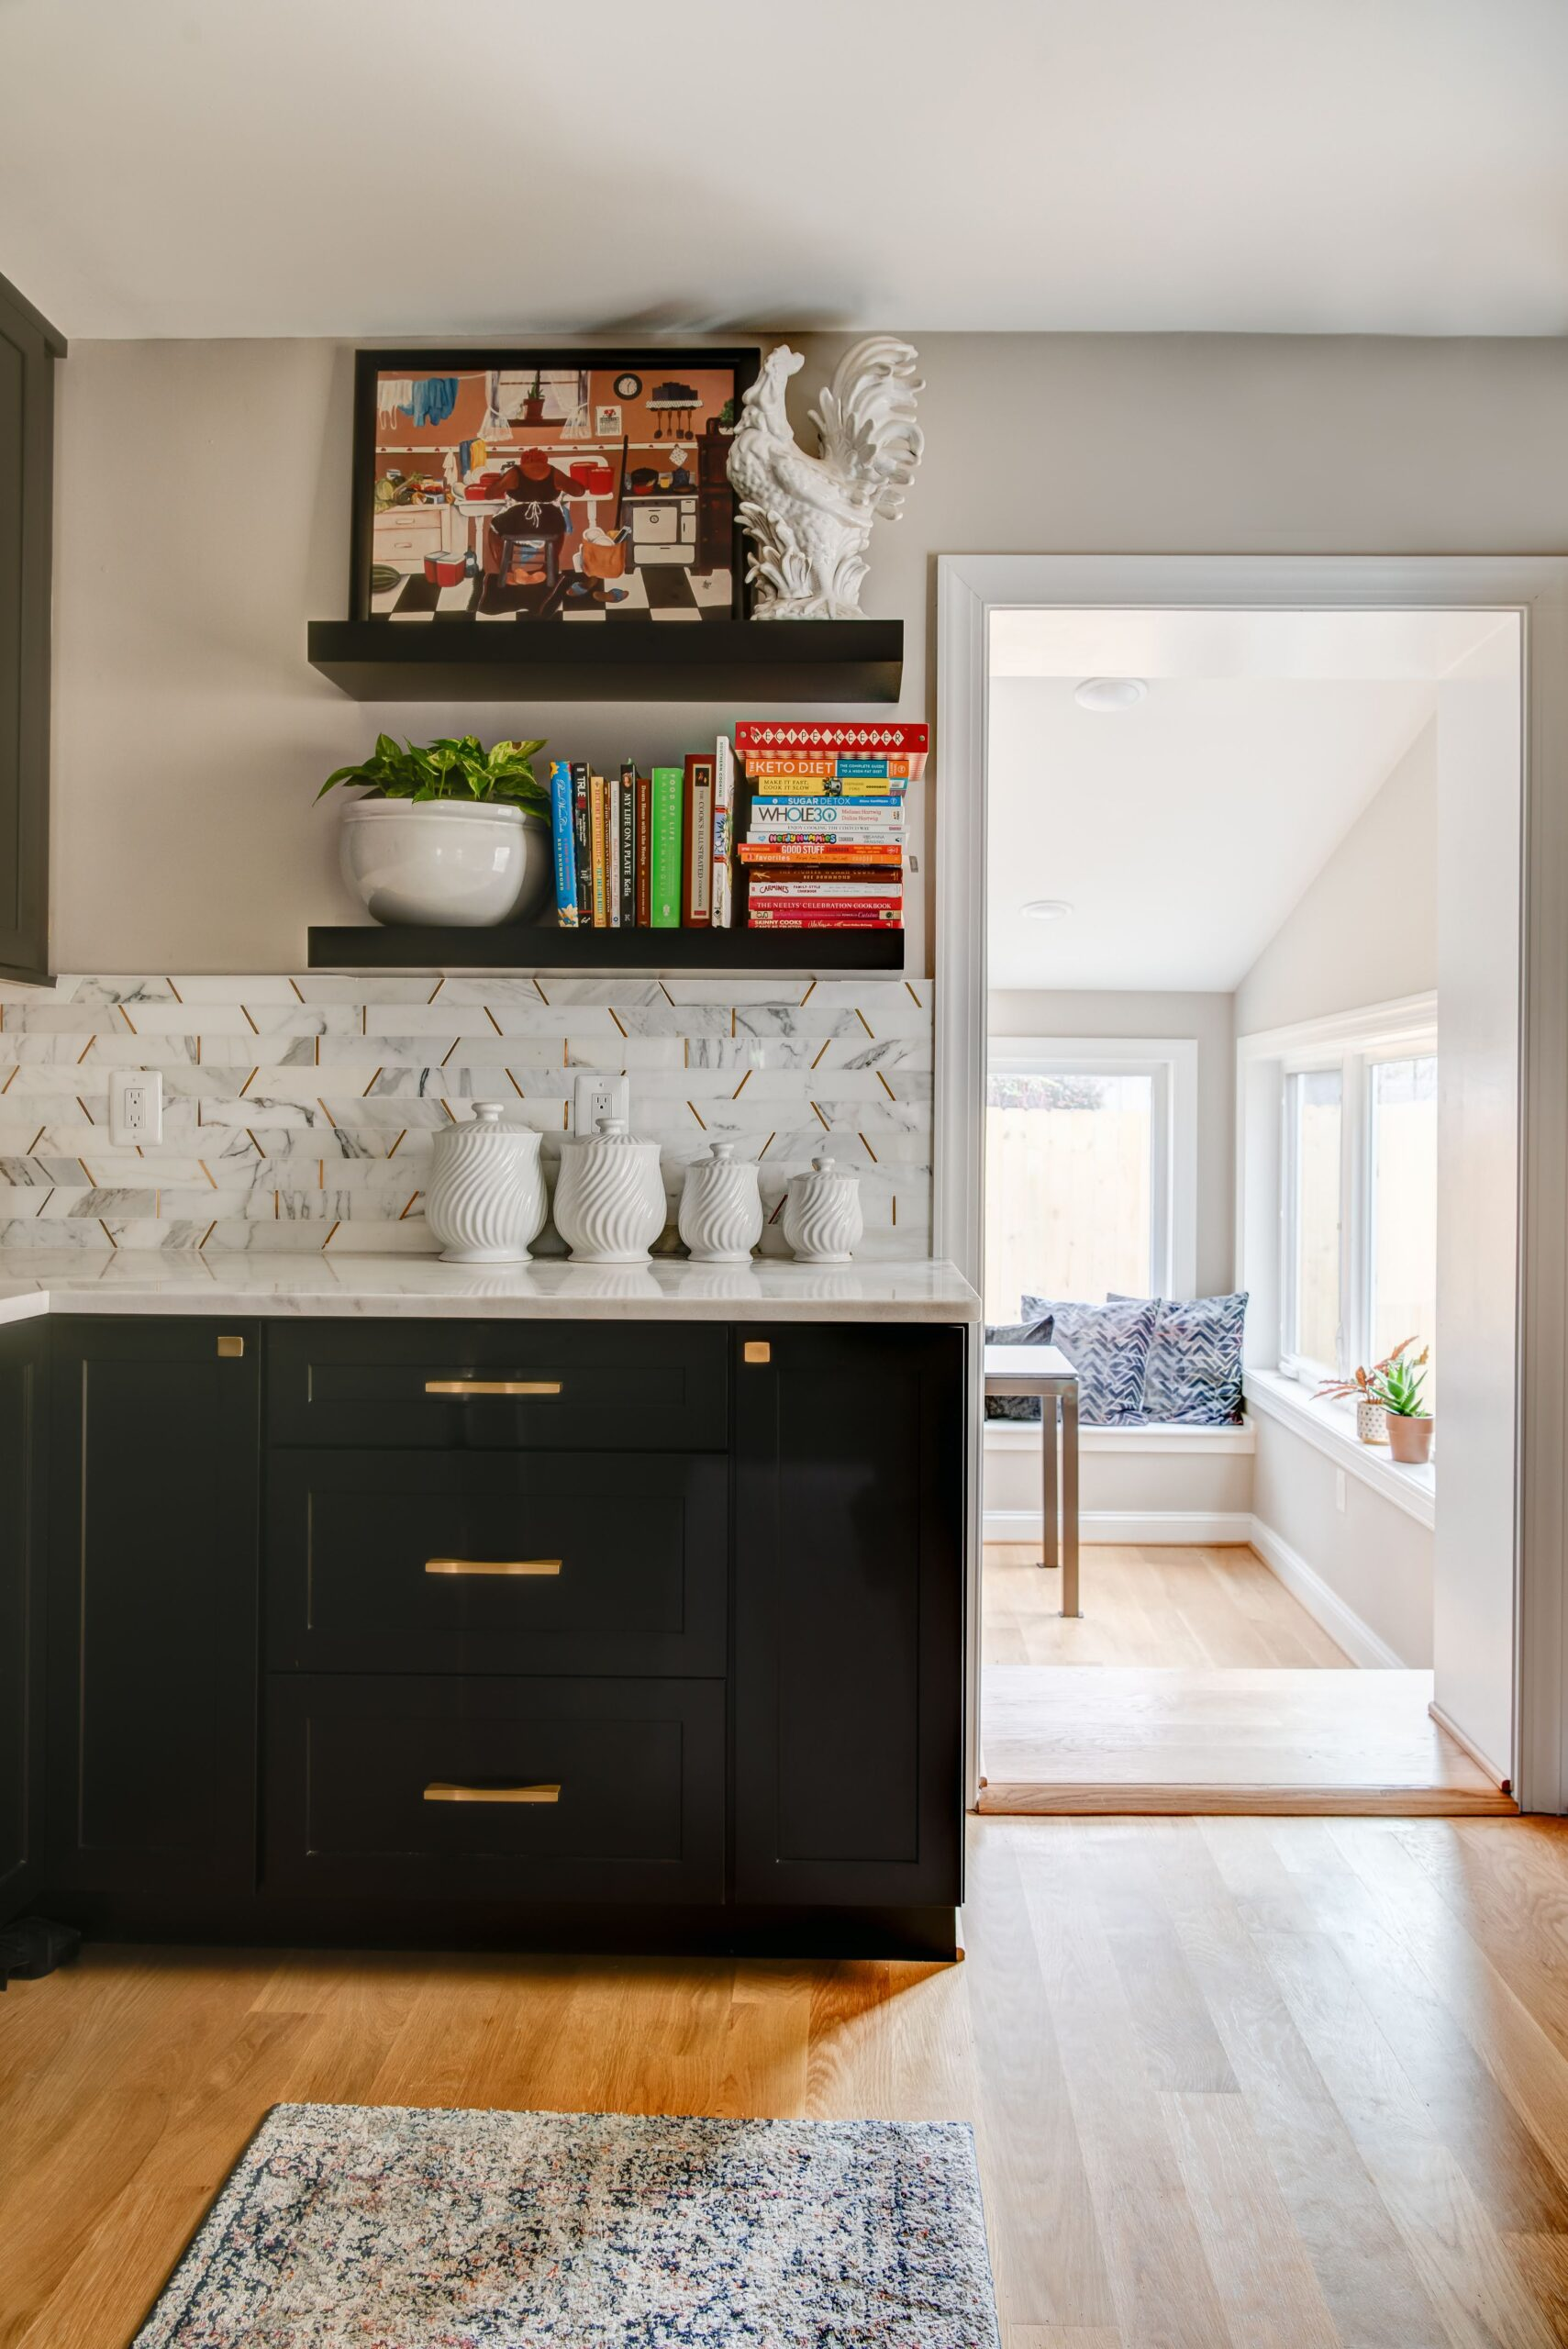 Capitol Hill Row House Breakfast Room, dmv interior designer, dc interior designer, Maryland designer, bowie designer, northern Virginia designer, #bebold